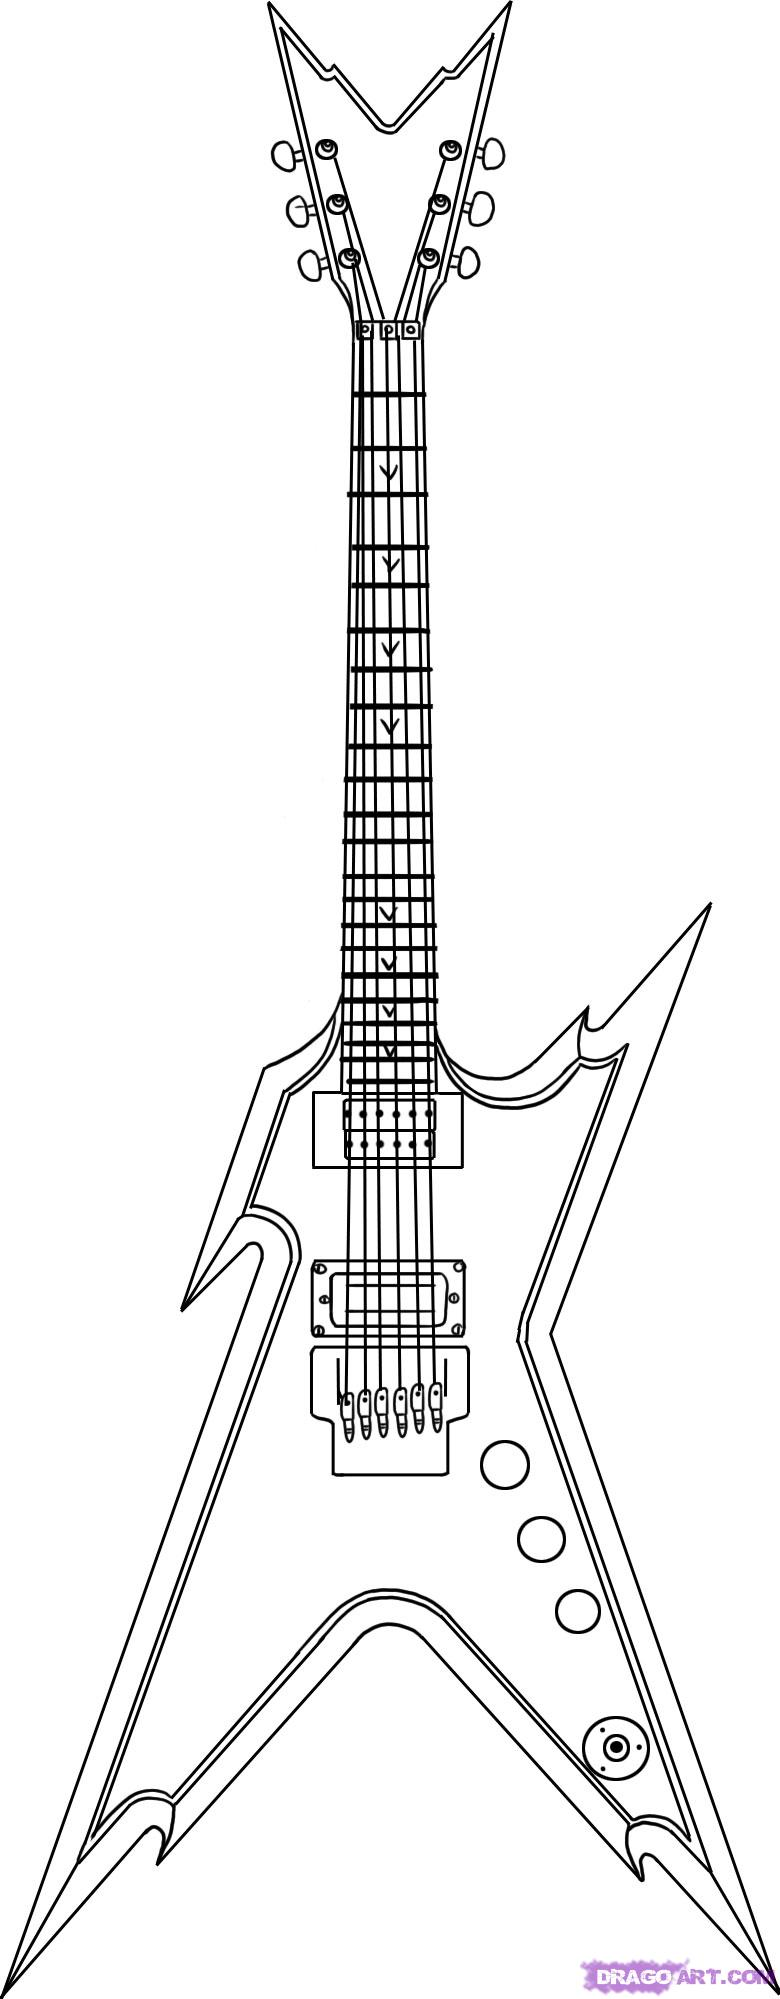 Drawn musician line drawing Musical draw electric 5 razorback